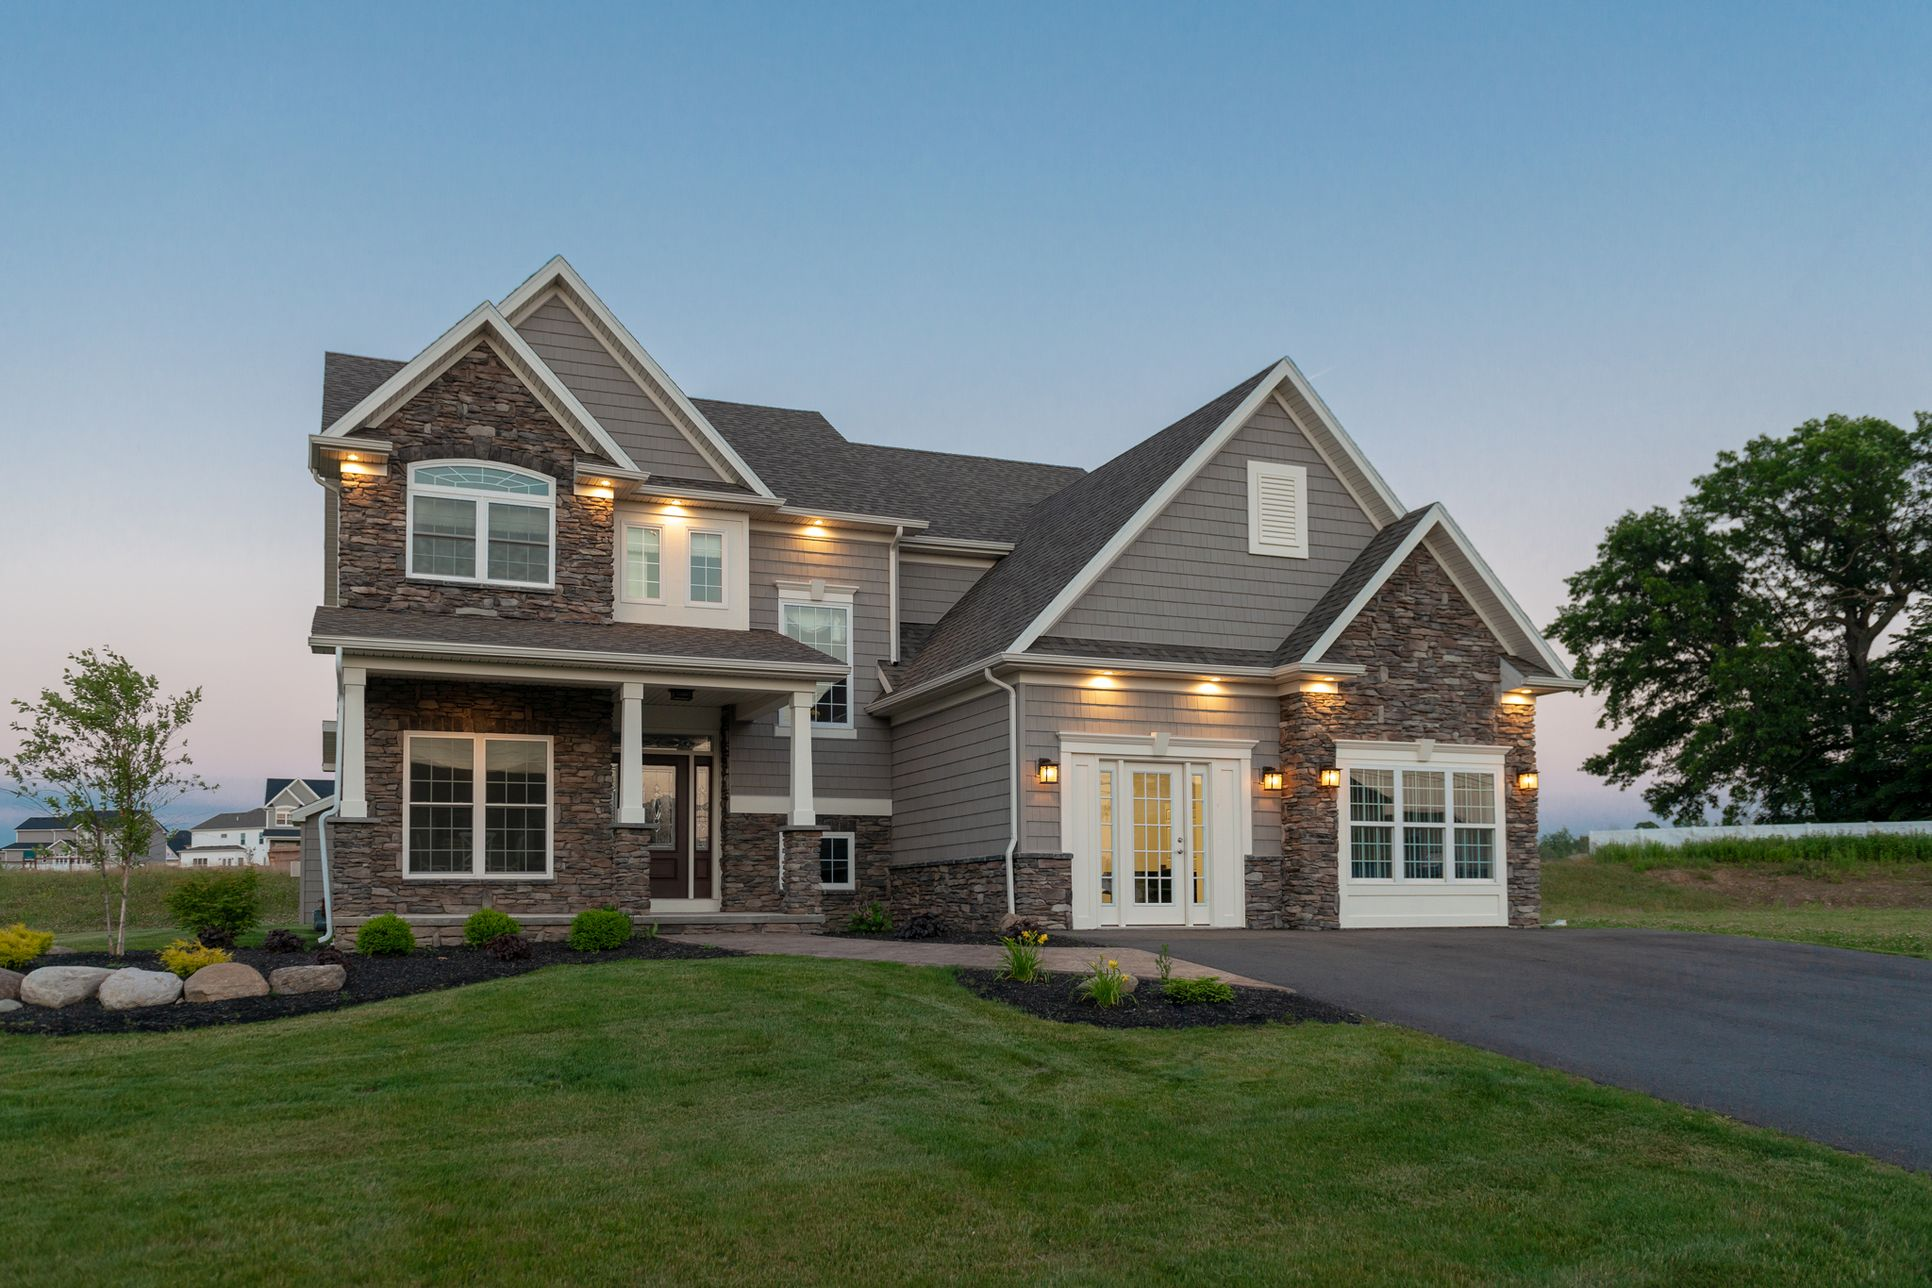 McMillon Exterior with Sales Office:McMillon Exterior with Sales Office